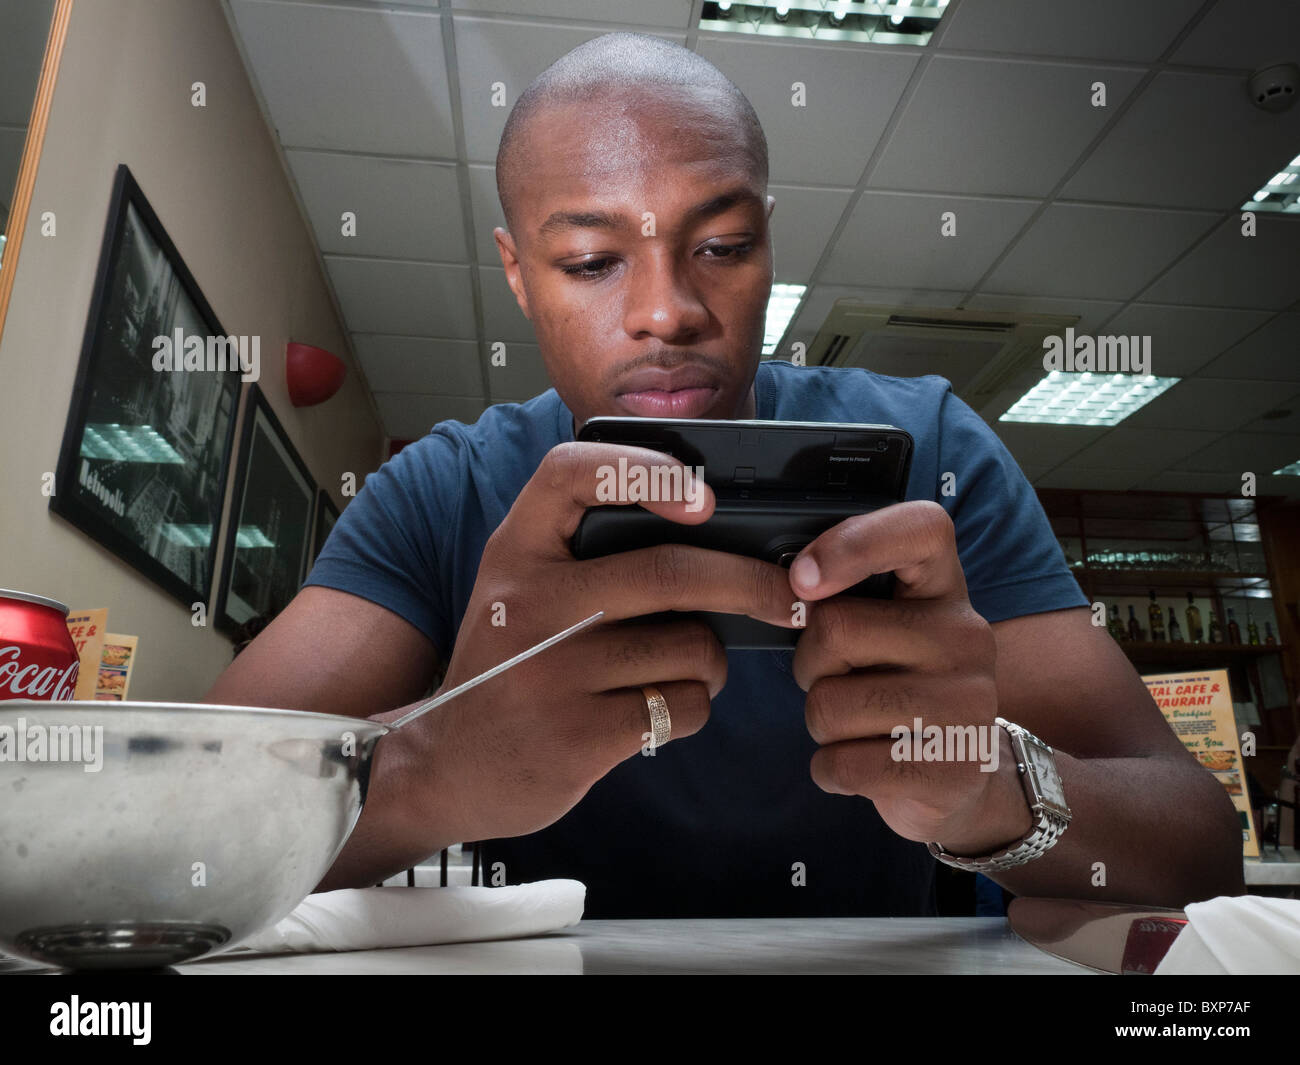 Man reading the news on the internet  on a smart mobile phone in a fast food restaurant - Stock Image